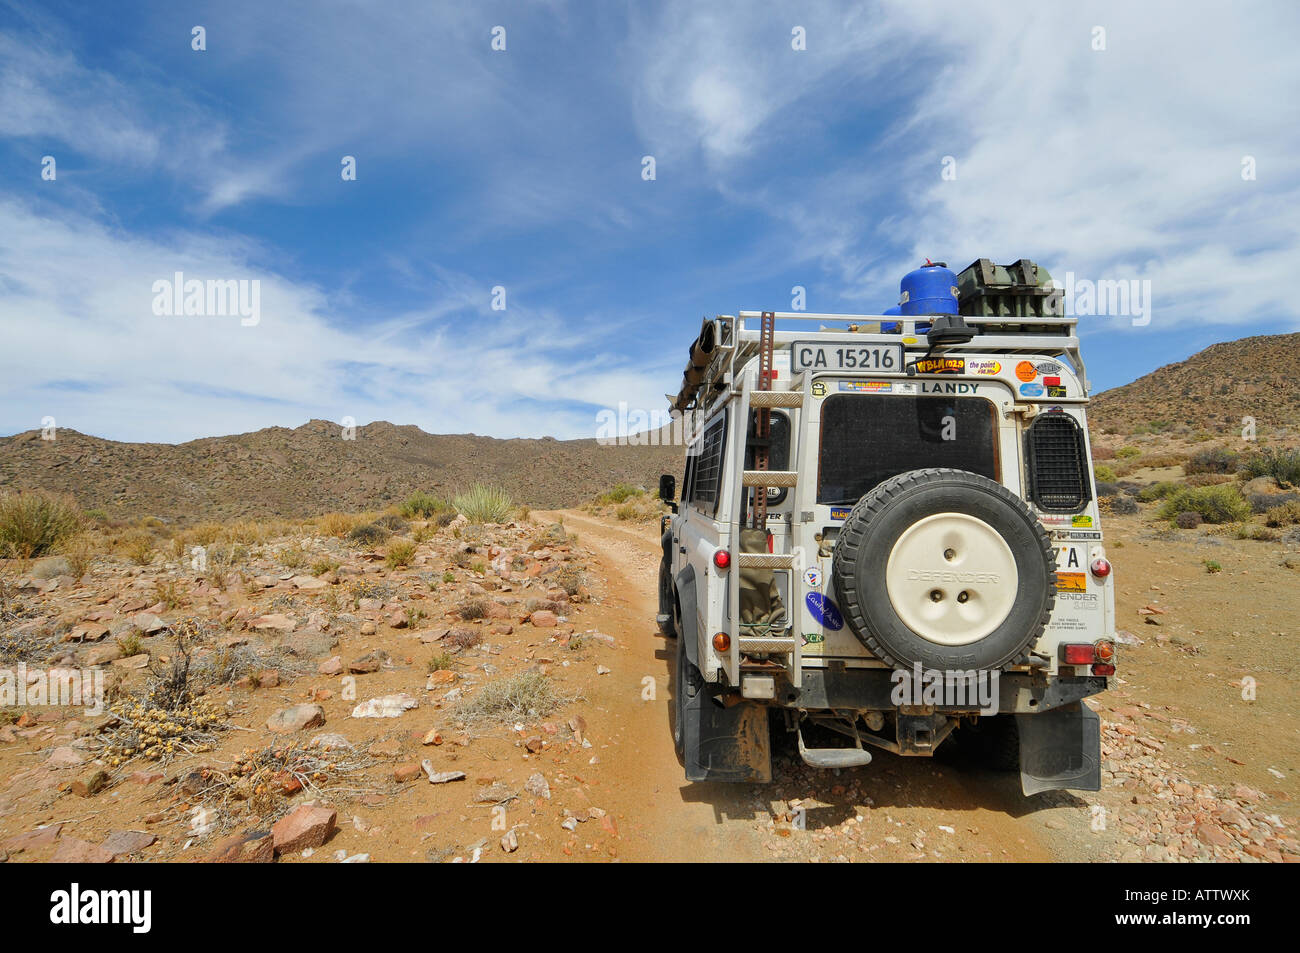 Ai Ais Richtersveld Transfrontier National Park at Akkedis Pass with Land Rover making the crossing - Stock Image